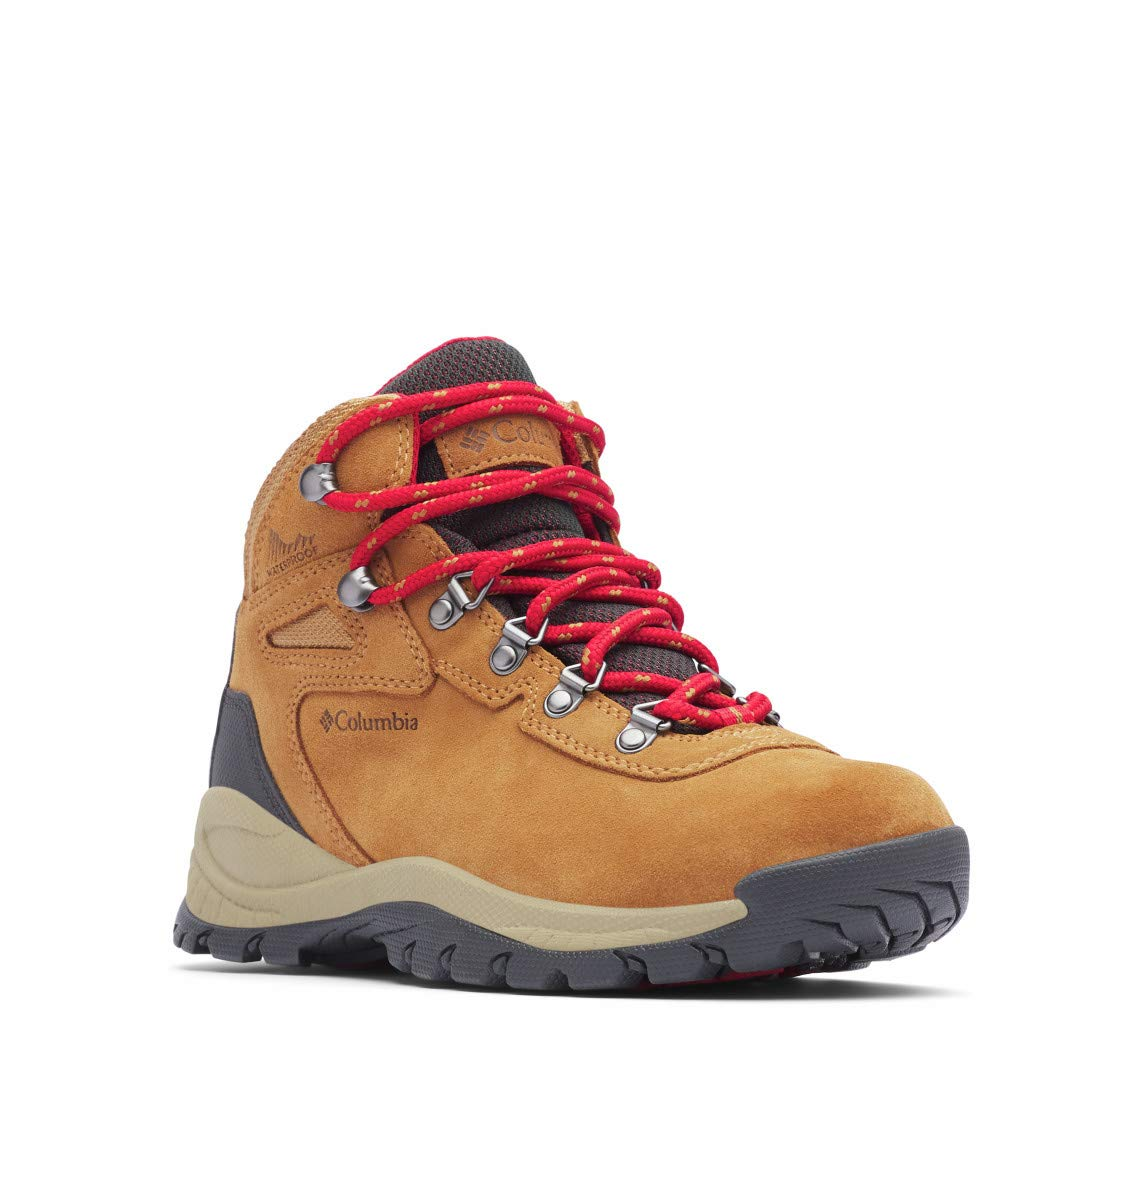 Columbia Women's Newton Ridge Plus, Elk/Mountain Red, 9 Regular US by Columbia